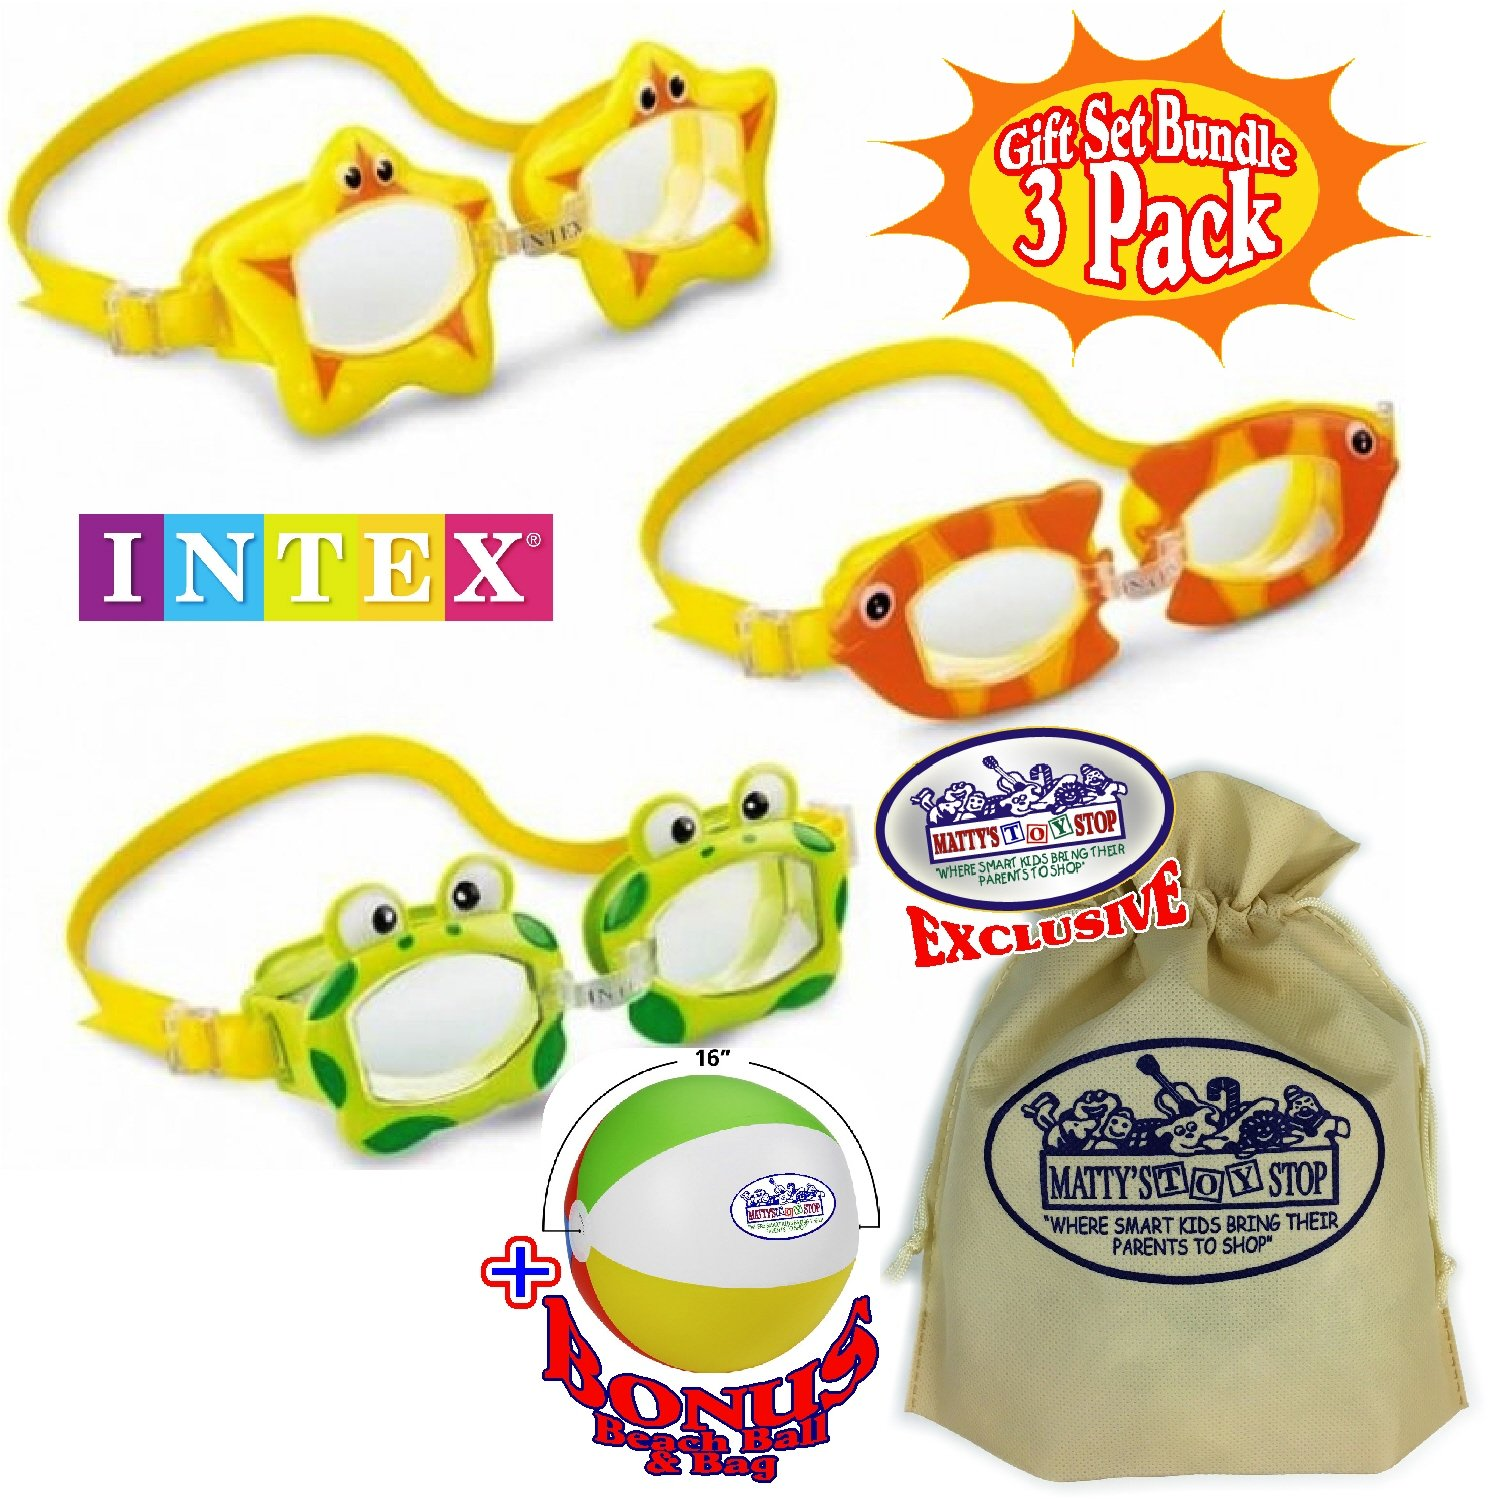 Matty's Toy Stop Aquaflow Mini Fun Swim Goggles Frog, Fish & Sea Star Gift Set Bundle with Bonus 16'' Beach Ball & Storage Bag - 3 Pack